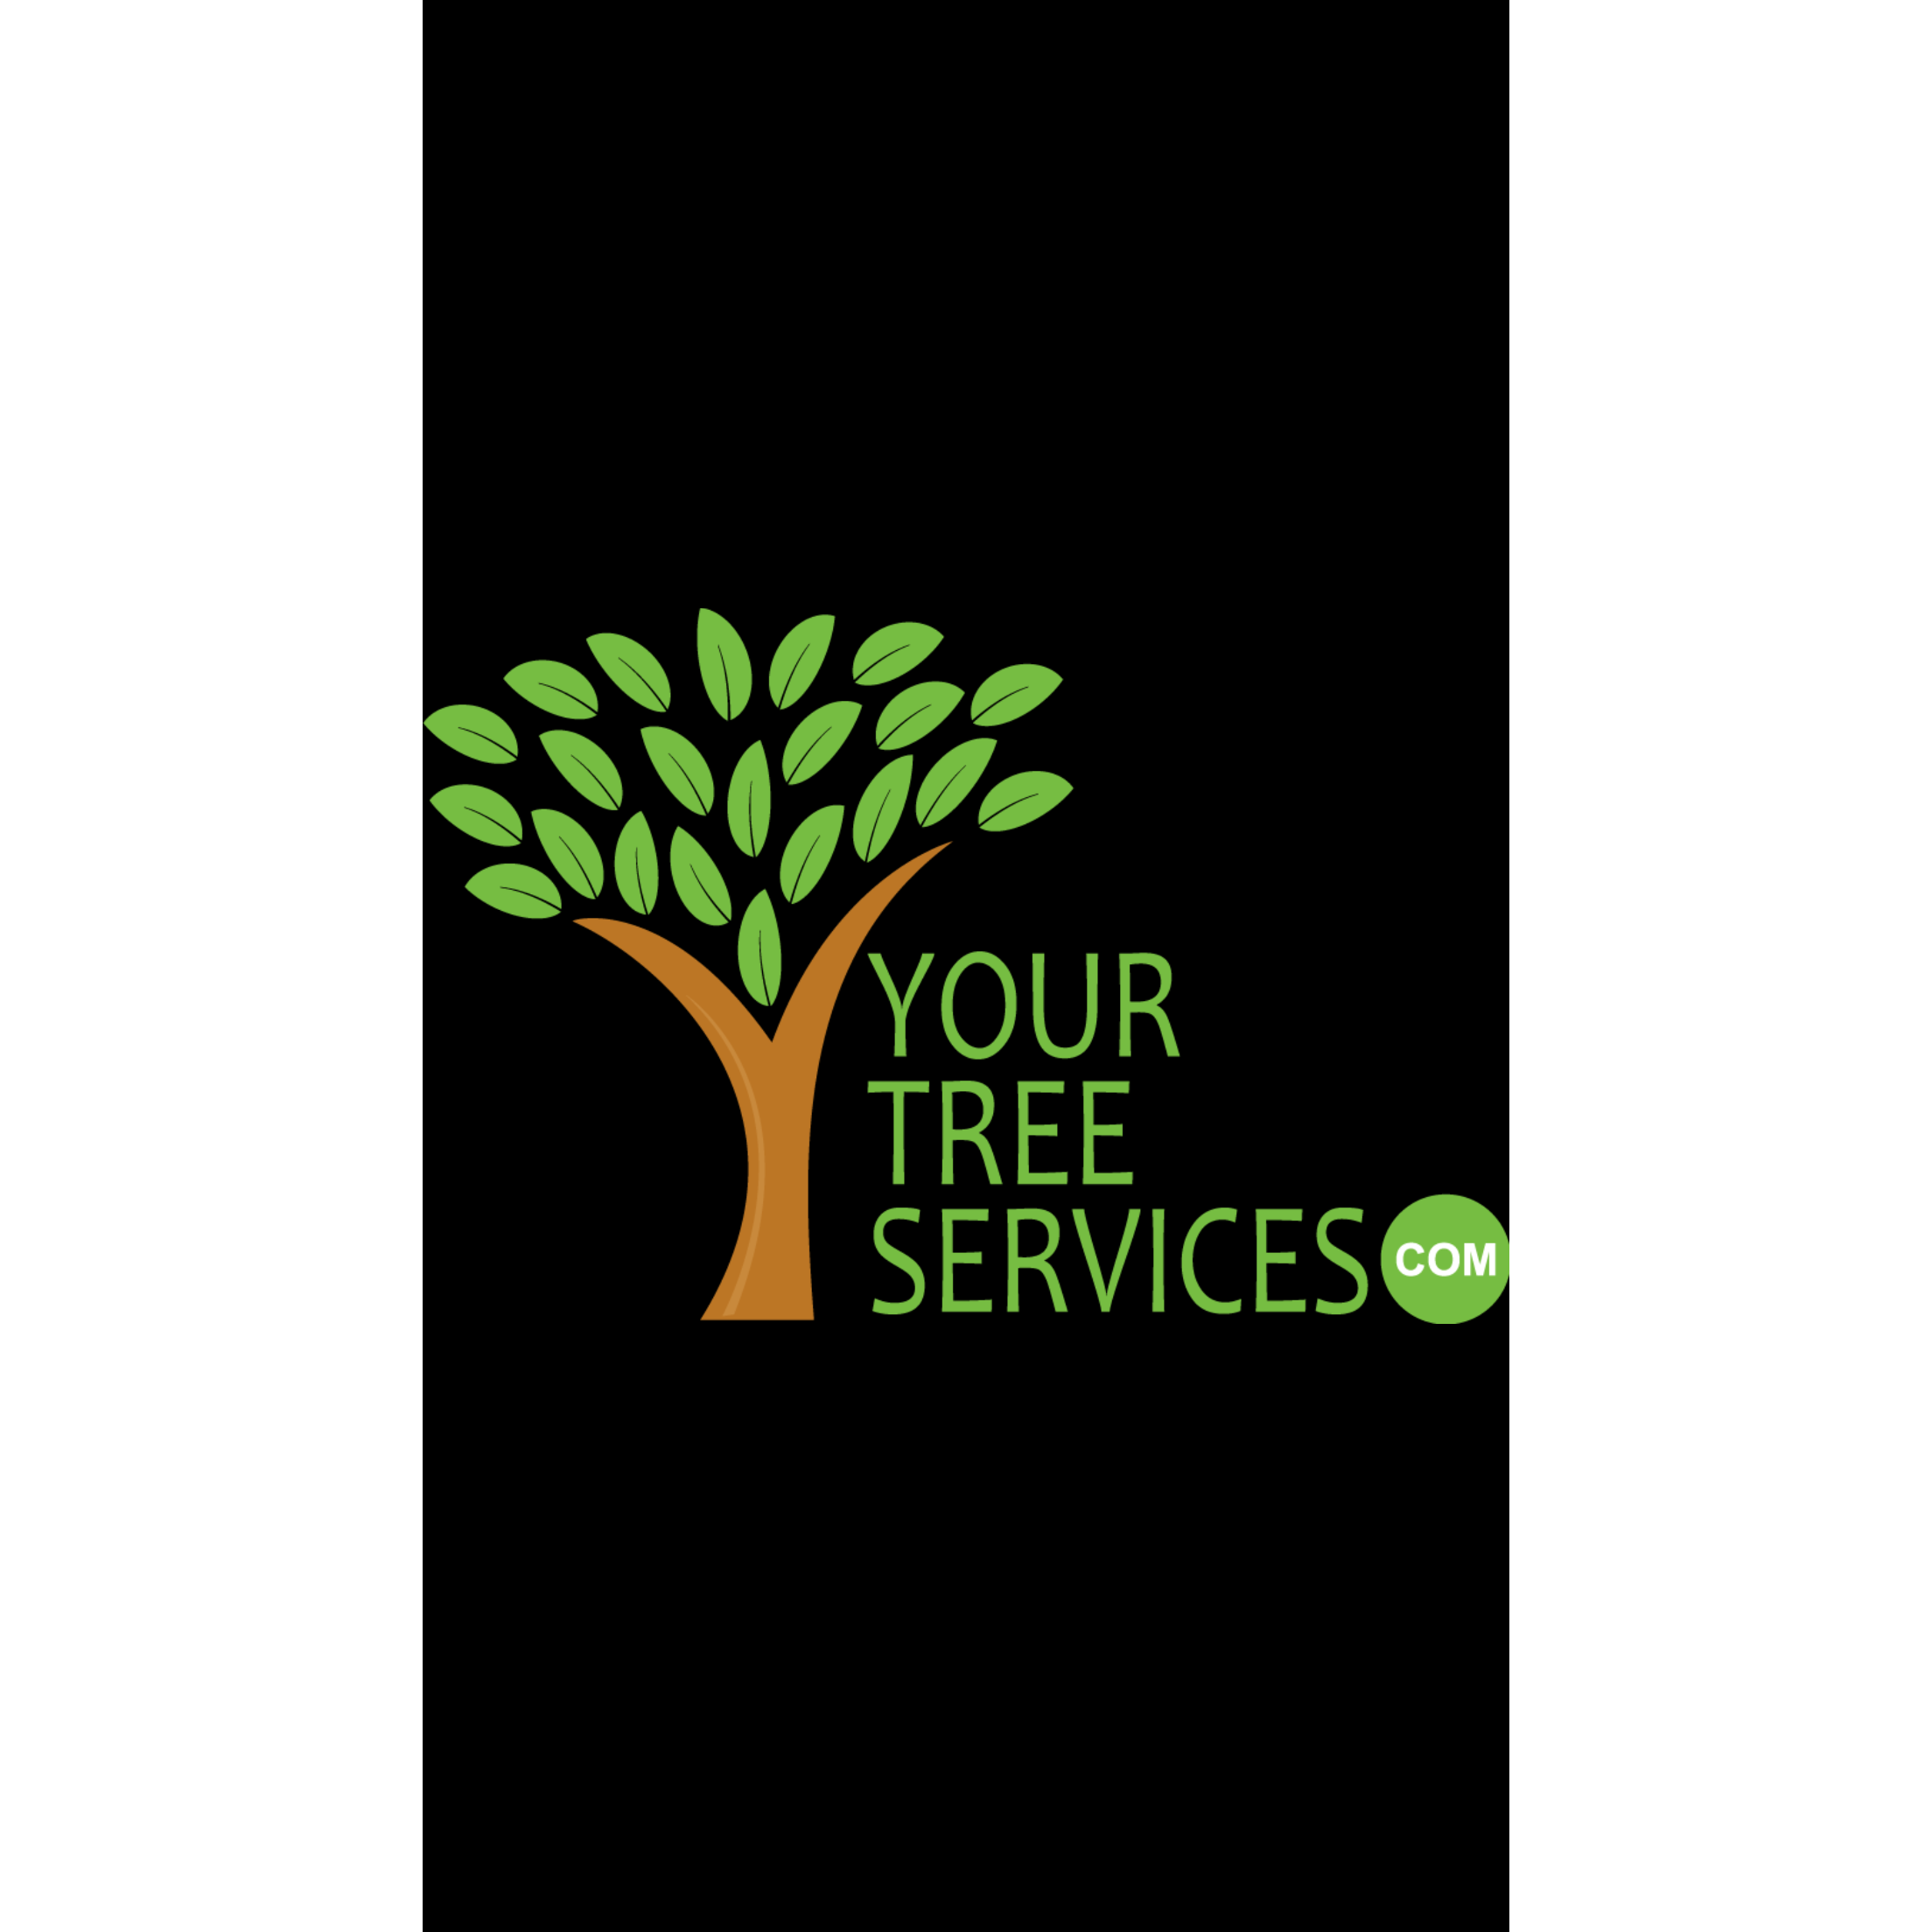 YourTreeServices.com